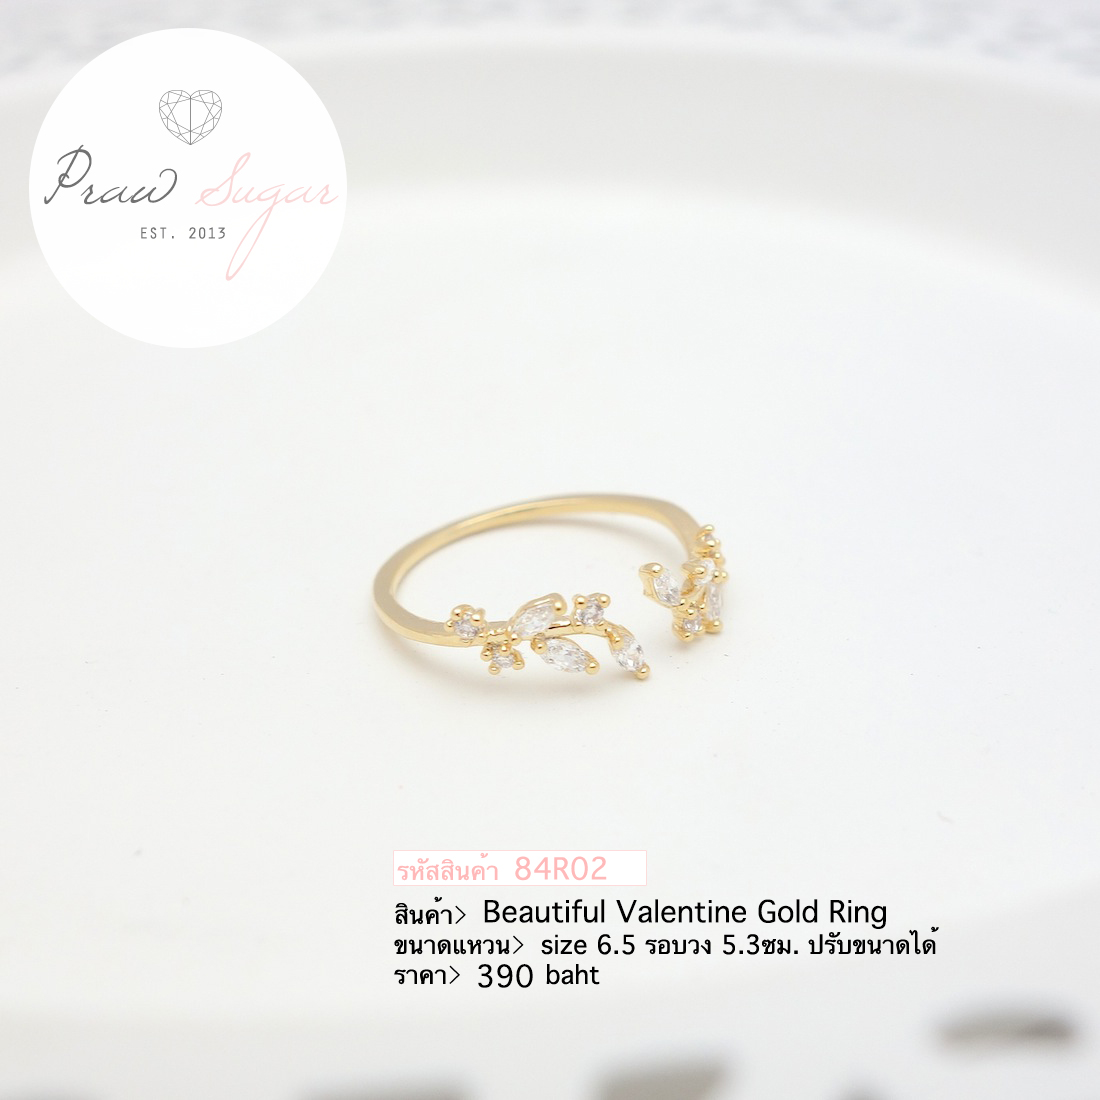 Beautiful Valentine Gold Ring